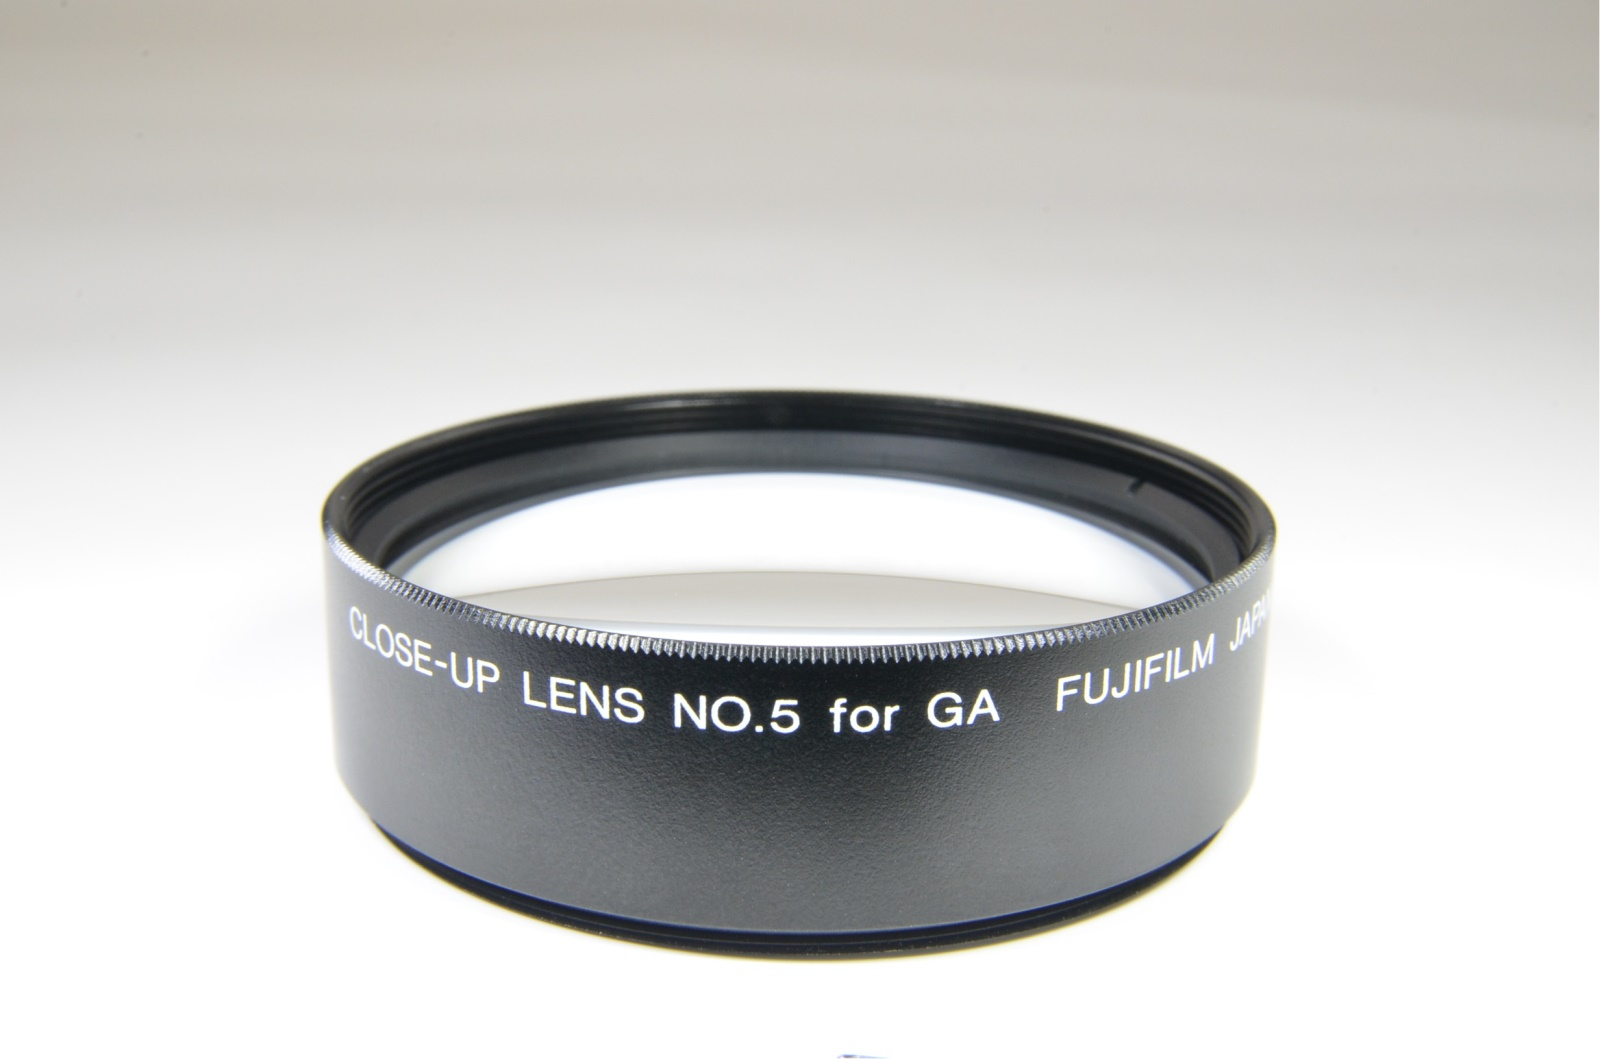 fuji fujifilm ga close-up lens kit no.5 for ga645 medium format camera near mint